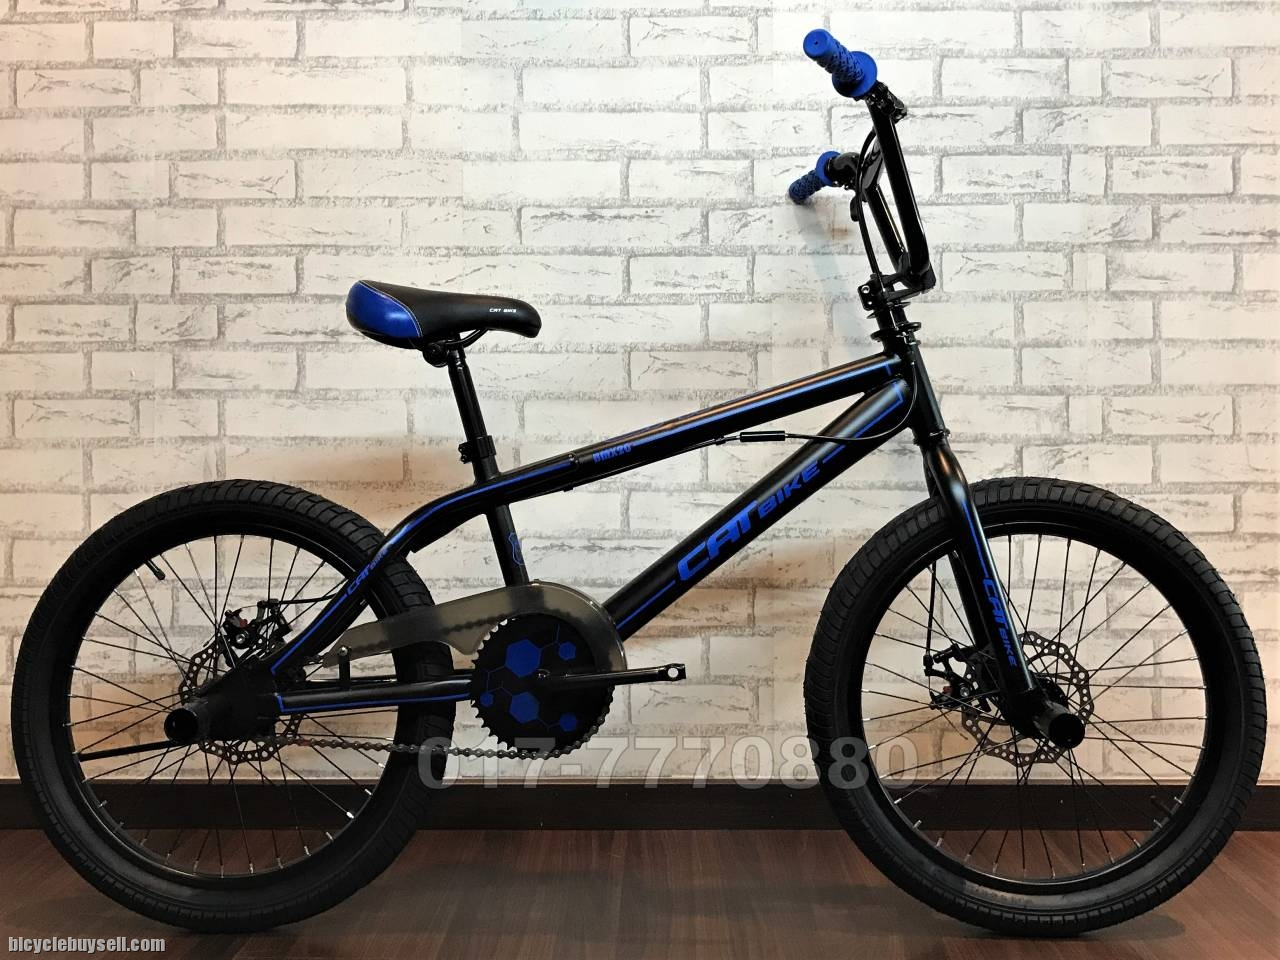 new gt bmx bicycle bike basikal free style with kangaroo bar. Black Bedroom Furniture Sets. Home Design Ideas